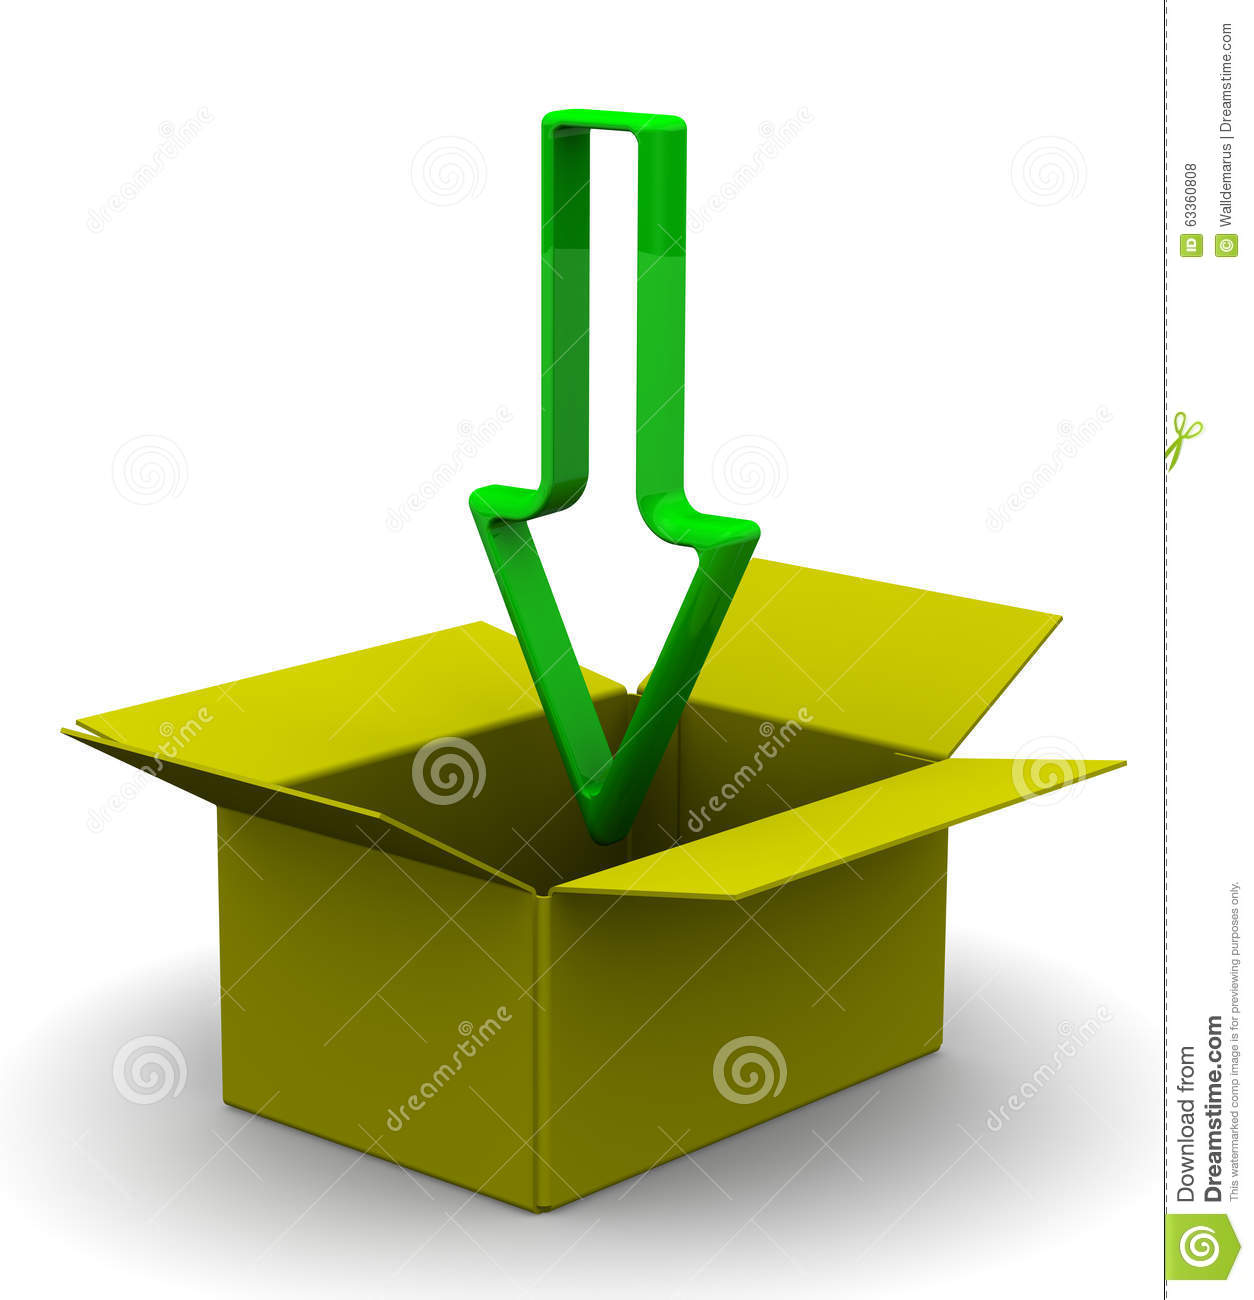 The Green Arrow Indicating The Direction In The Box Stock